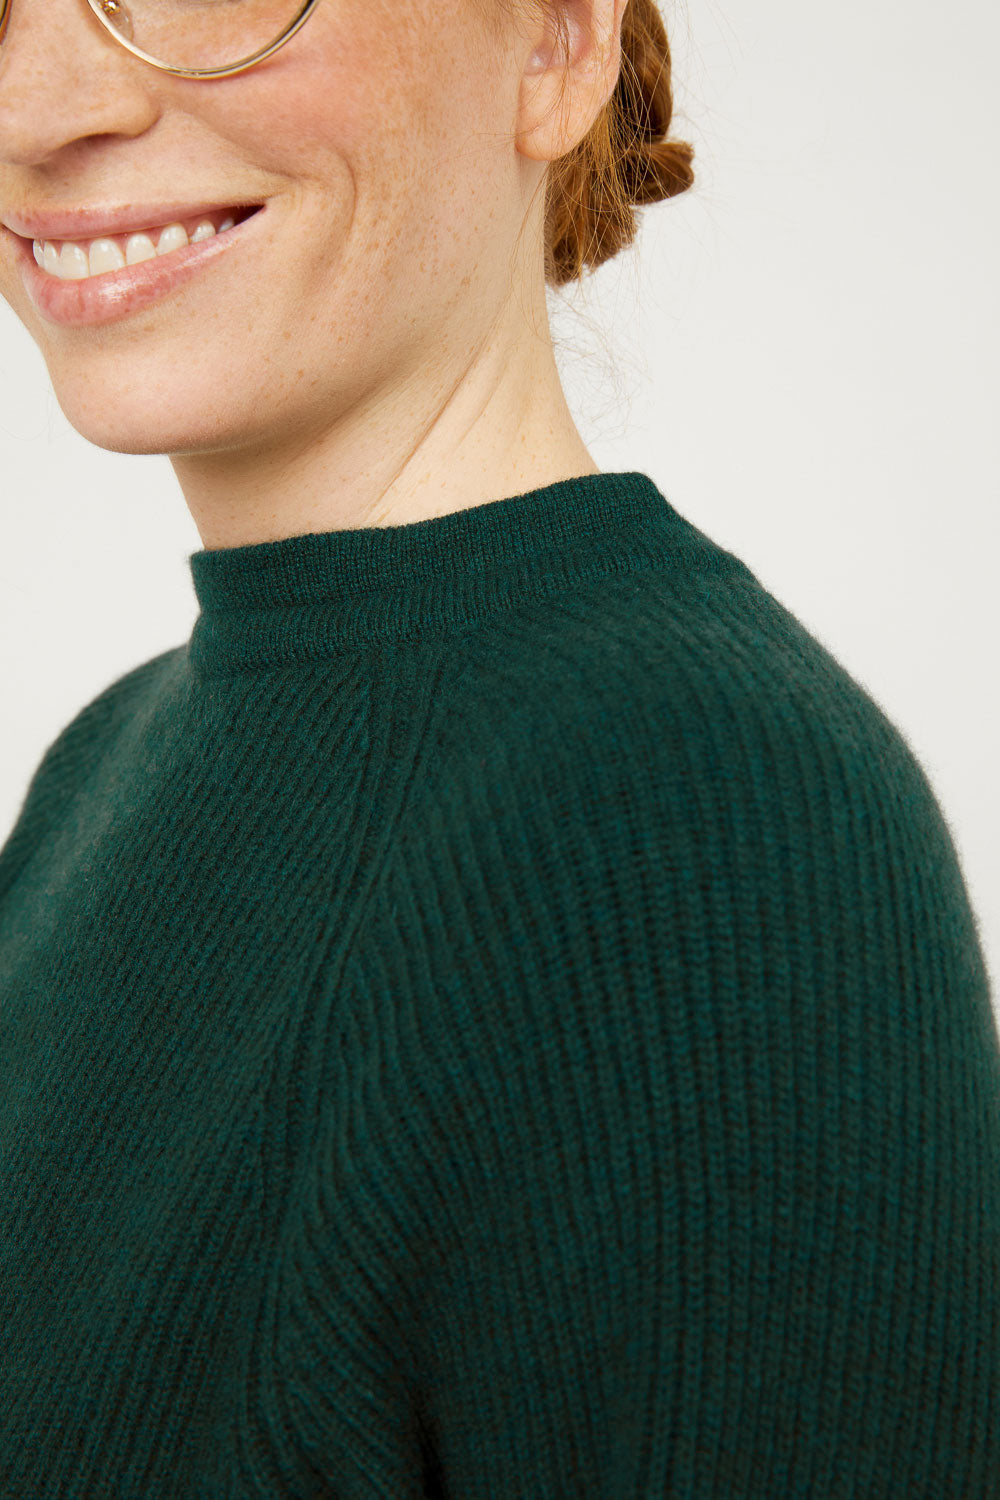 Evergreen cashmere mock neck pullover sweater with tie back neck detail